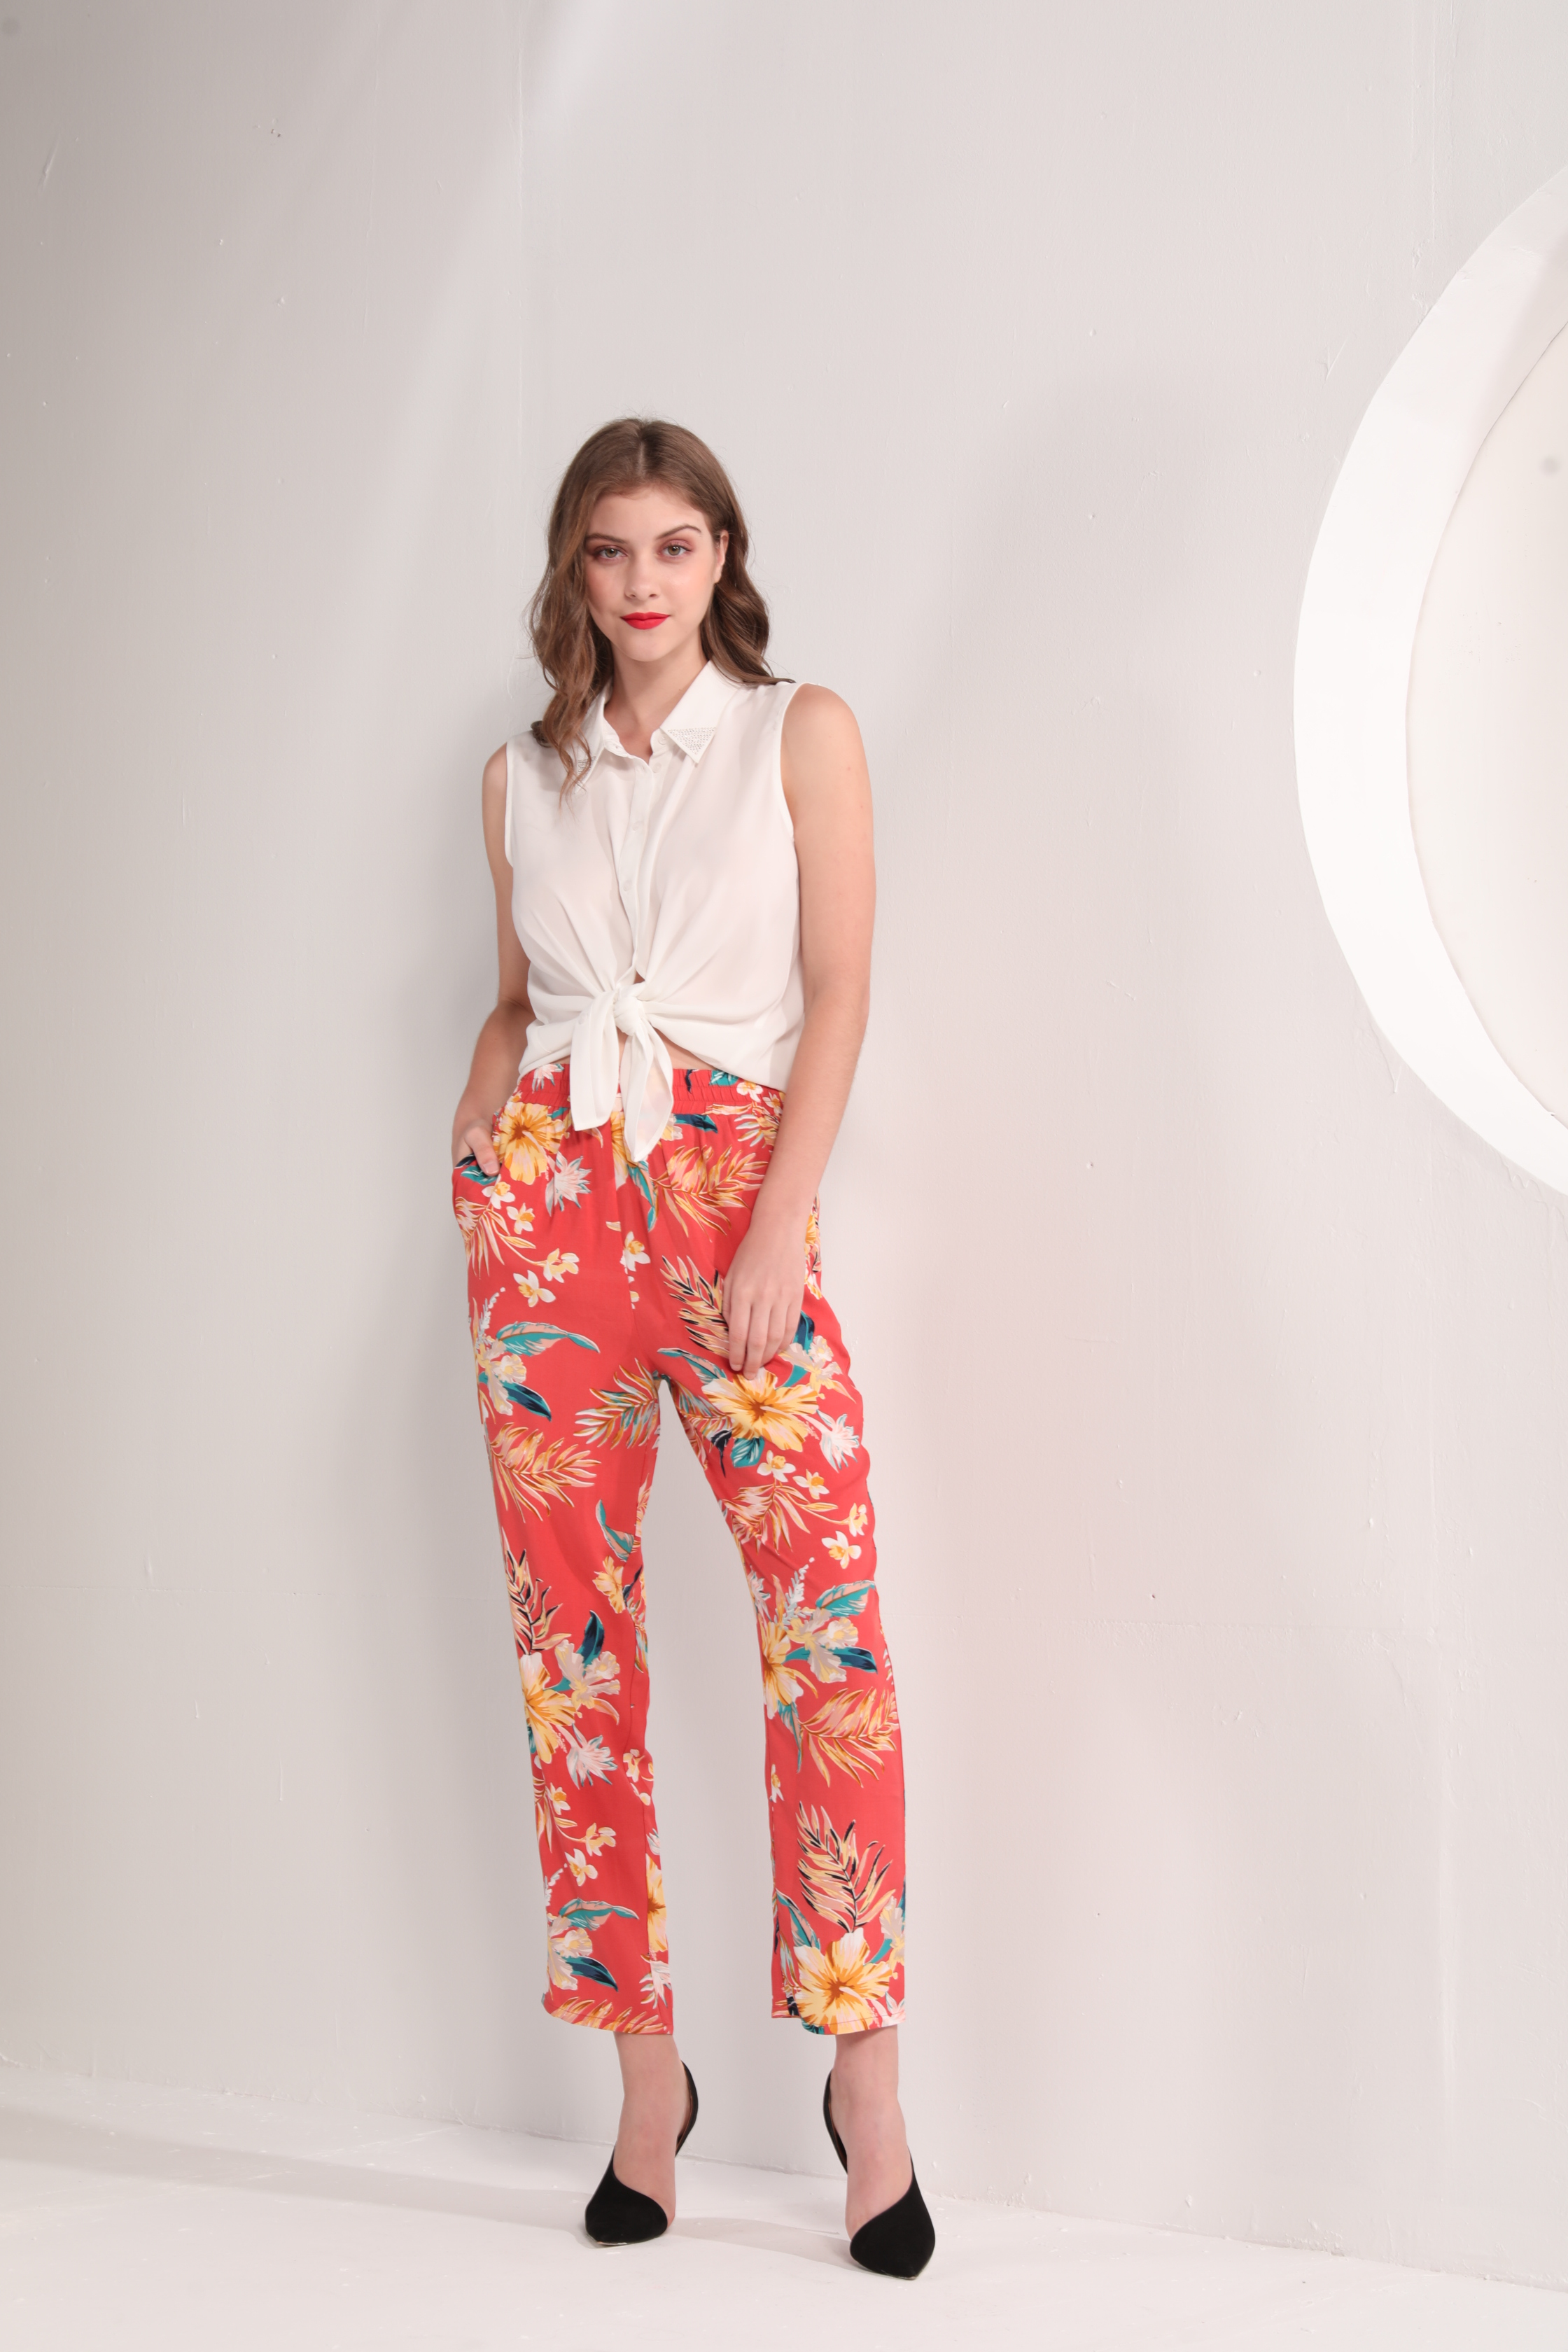 Ladies' Tropical Floral Print Pants